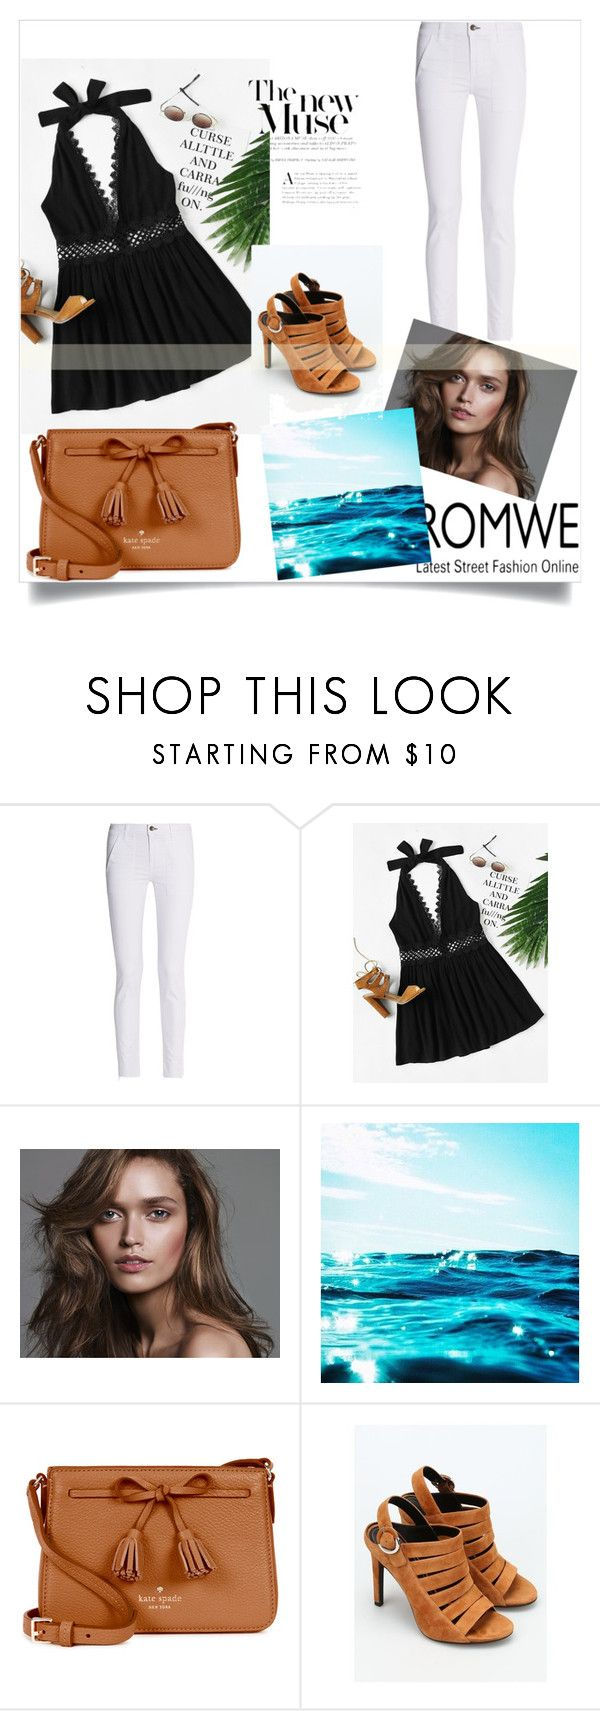 """Bez naslova #21"" by sofi-ja ❤ liked on Polyvore featuring rag & bone, Kate Spade and Kendall + Kylie"